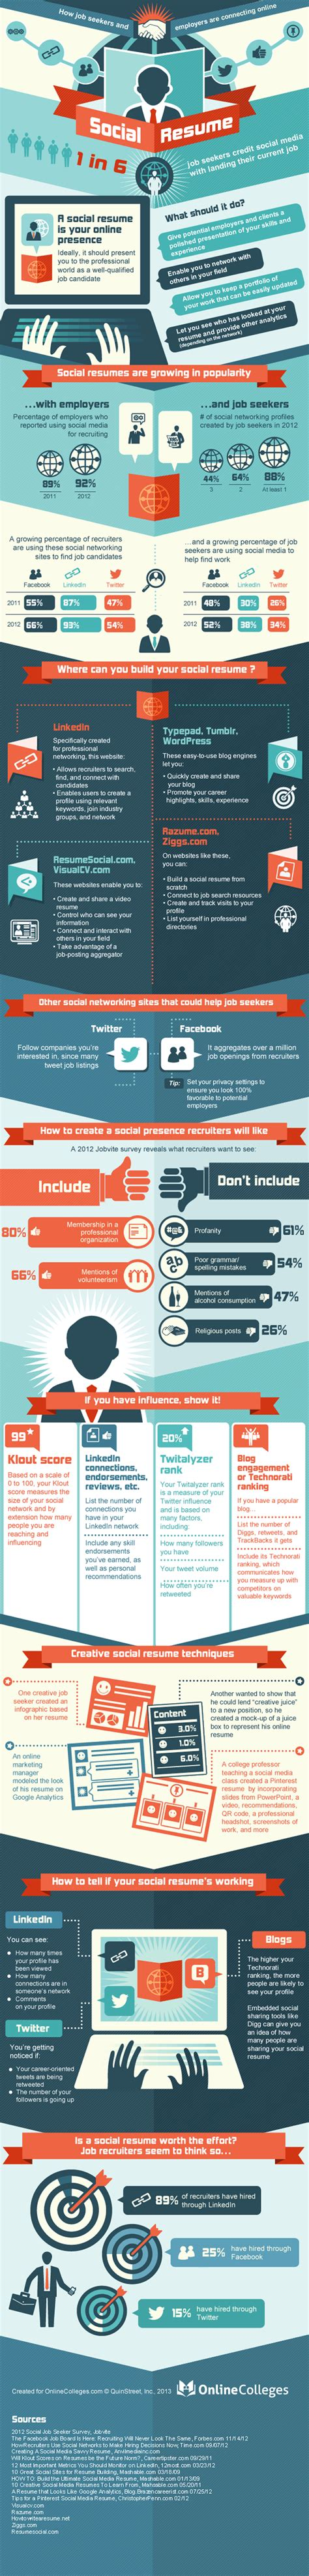 Your Online Presence Can Help You Get A Job [#infographic